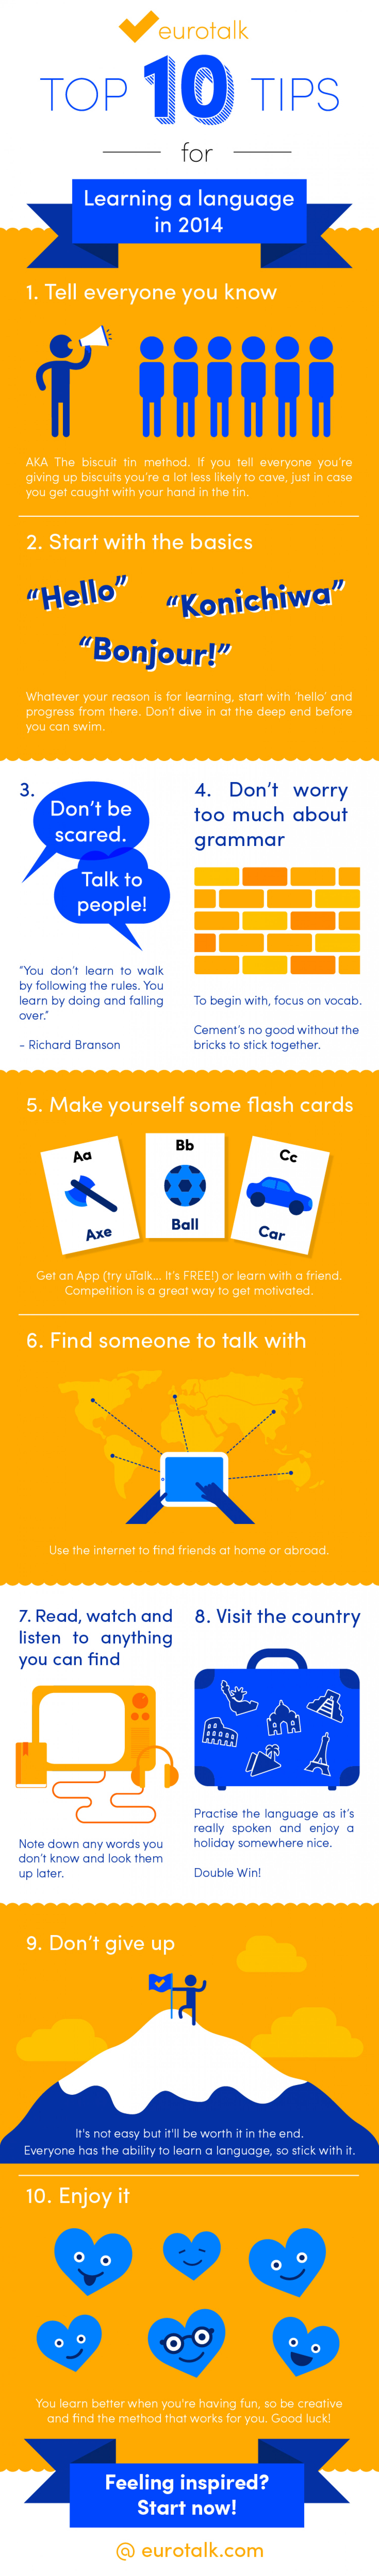 Top Ten Tips for Learning a Language in 2014 Infographic